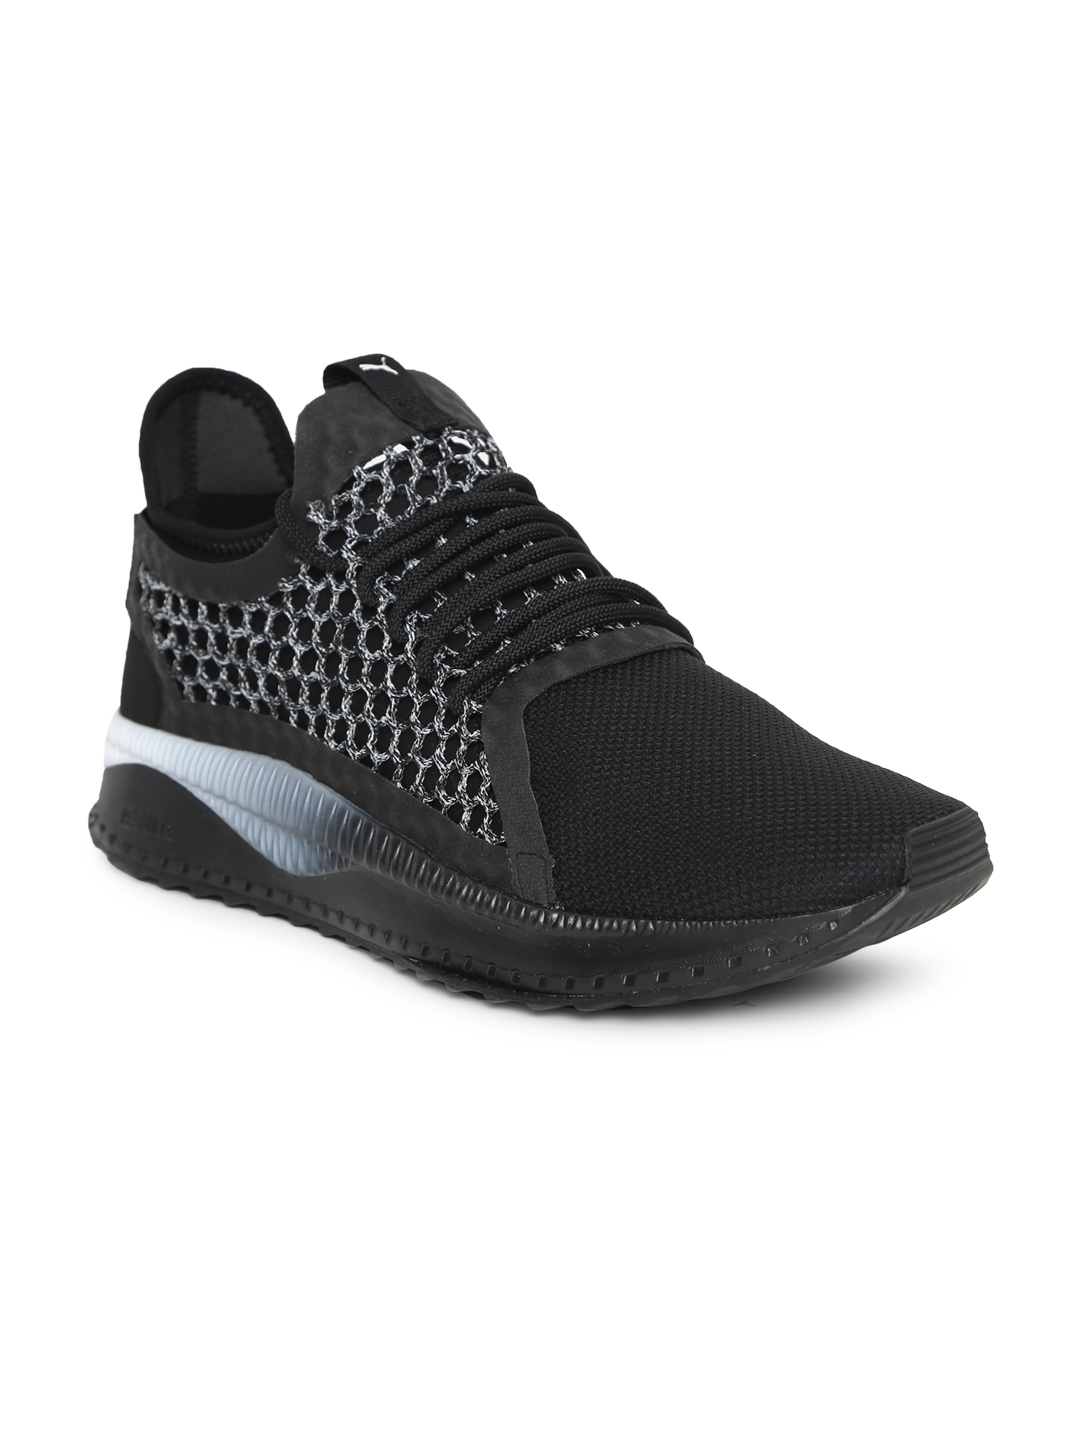 Buy Puma Men Black   Grey TSUGI NETFIT V2 Sneakers - Casual Shoes ... c8c086b79